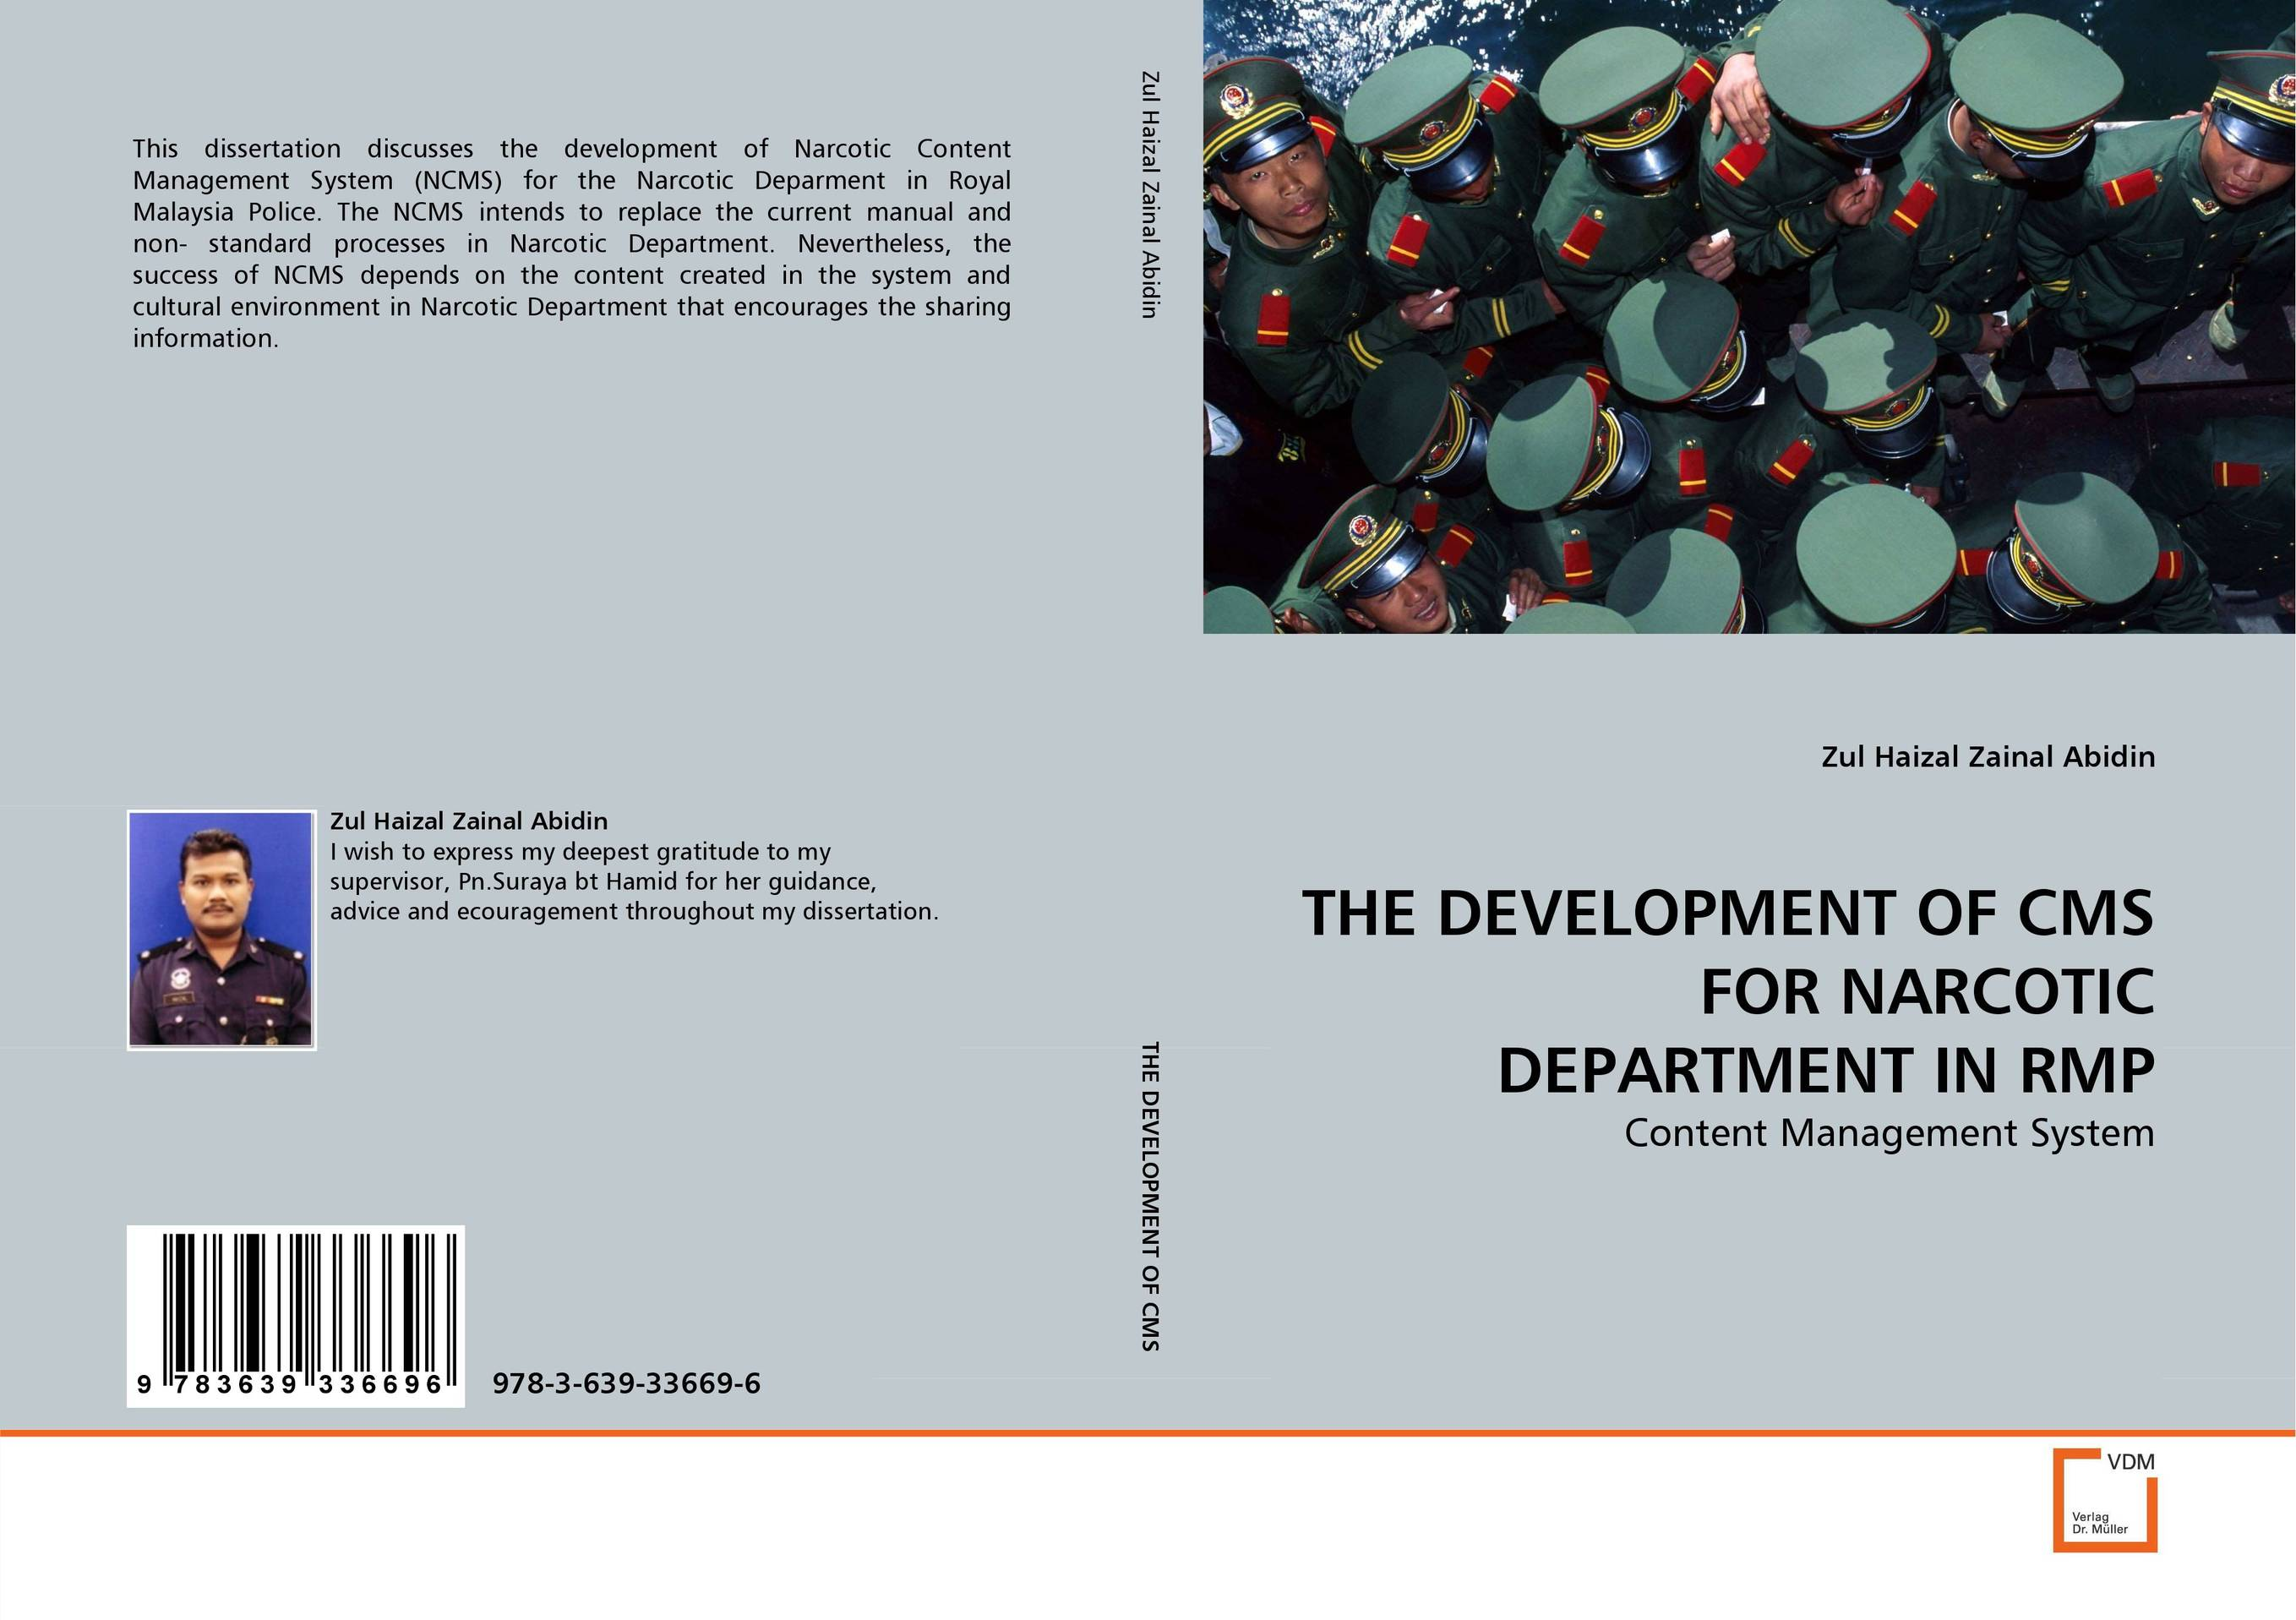 THE DEVELOPMENT OF CMS FOR NARCOTIC DEPARTMENT IN RMP